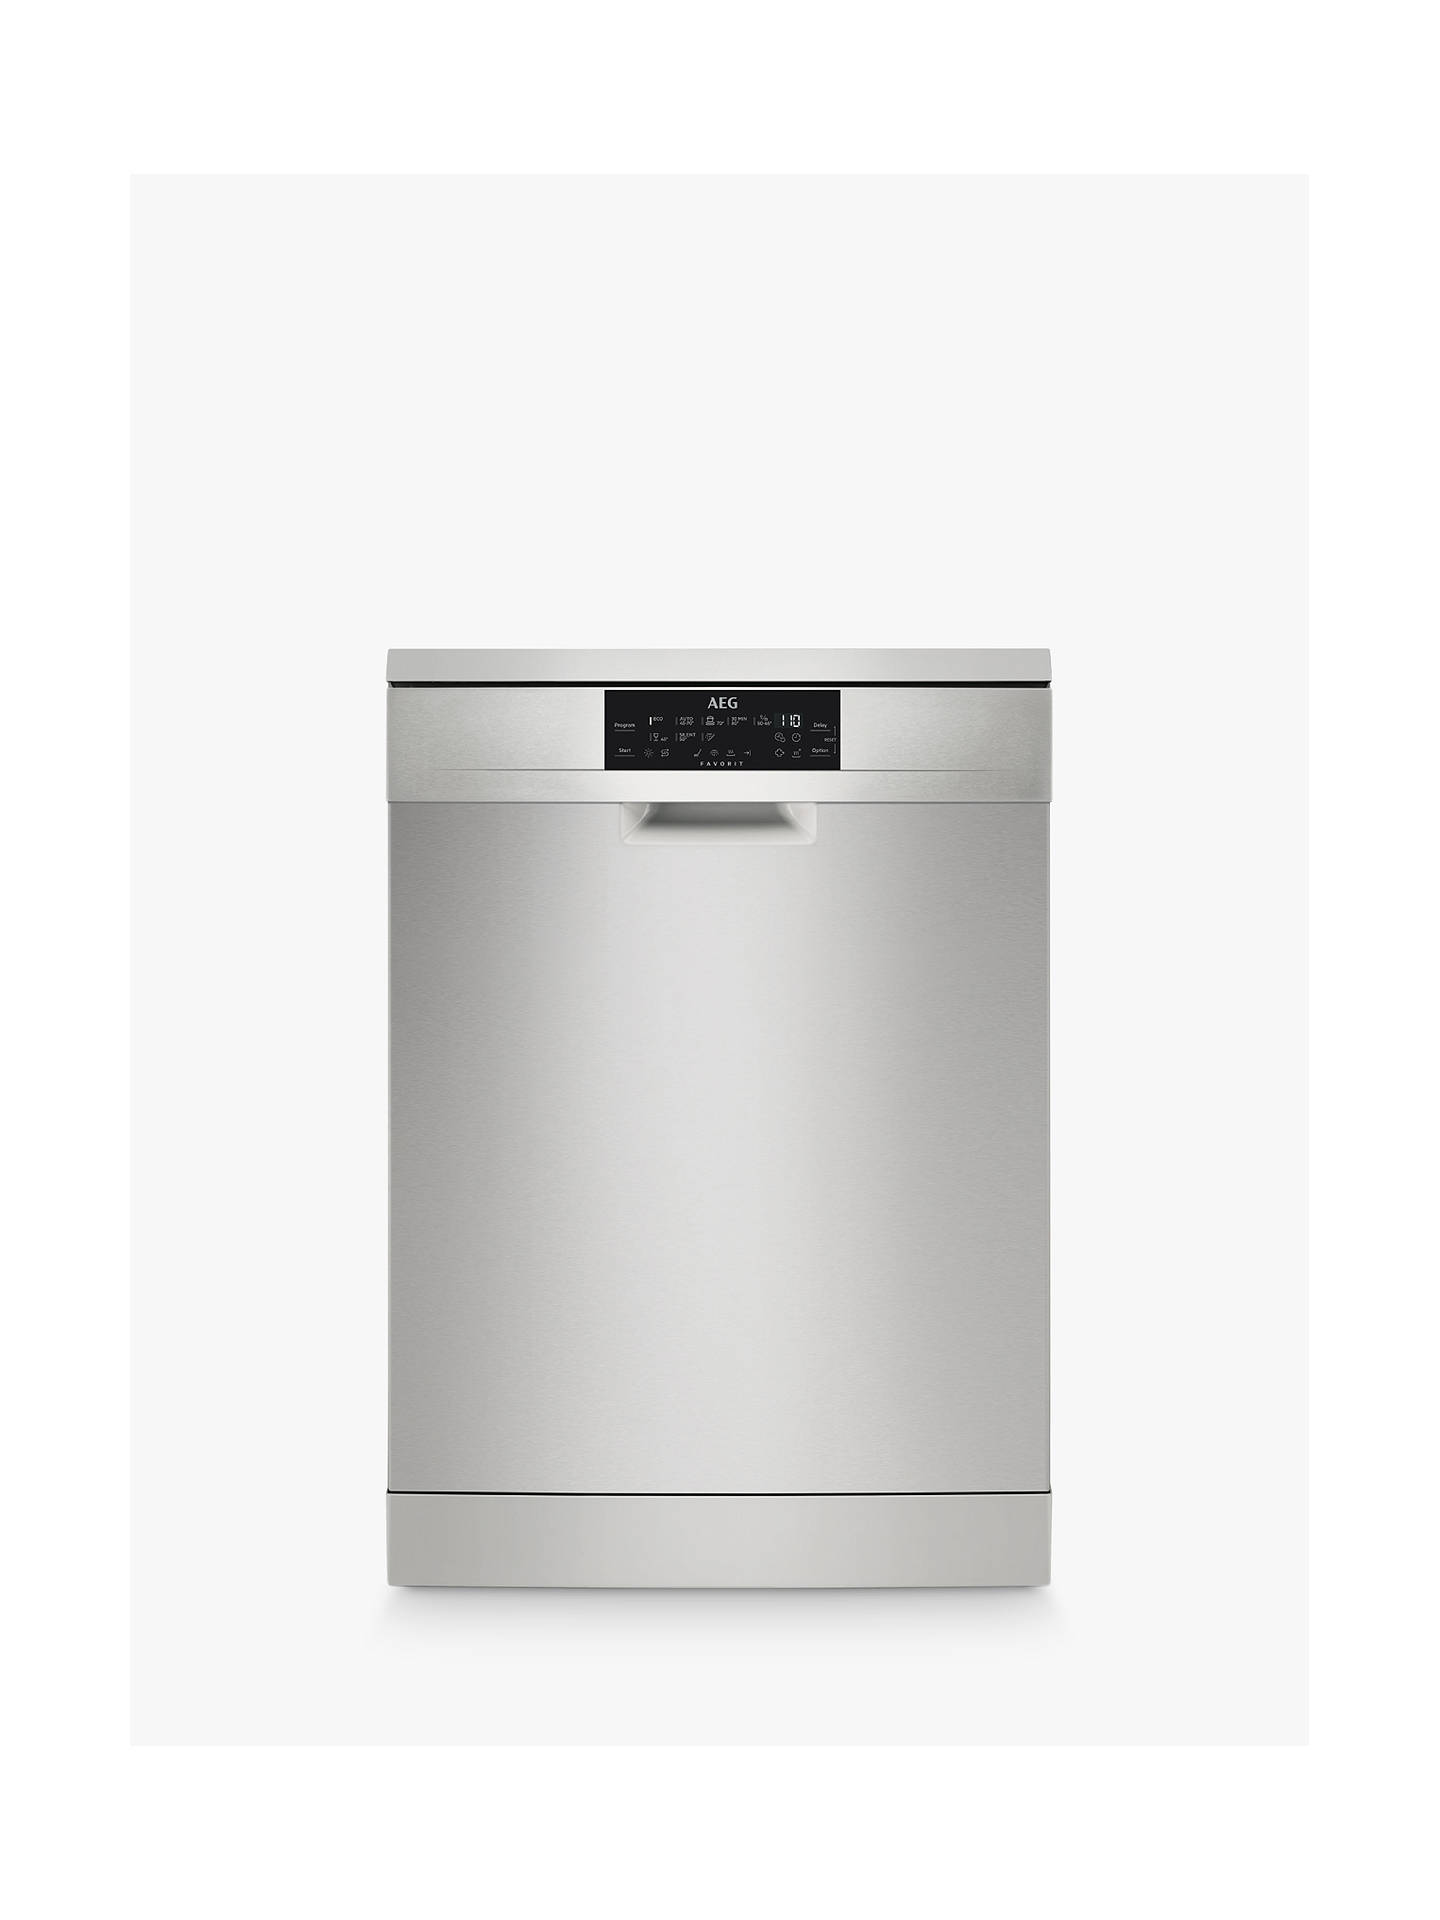 BuyAEG FFE83700PM Freestanding Dishwasher, Silver Online at johnlewis.com